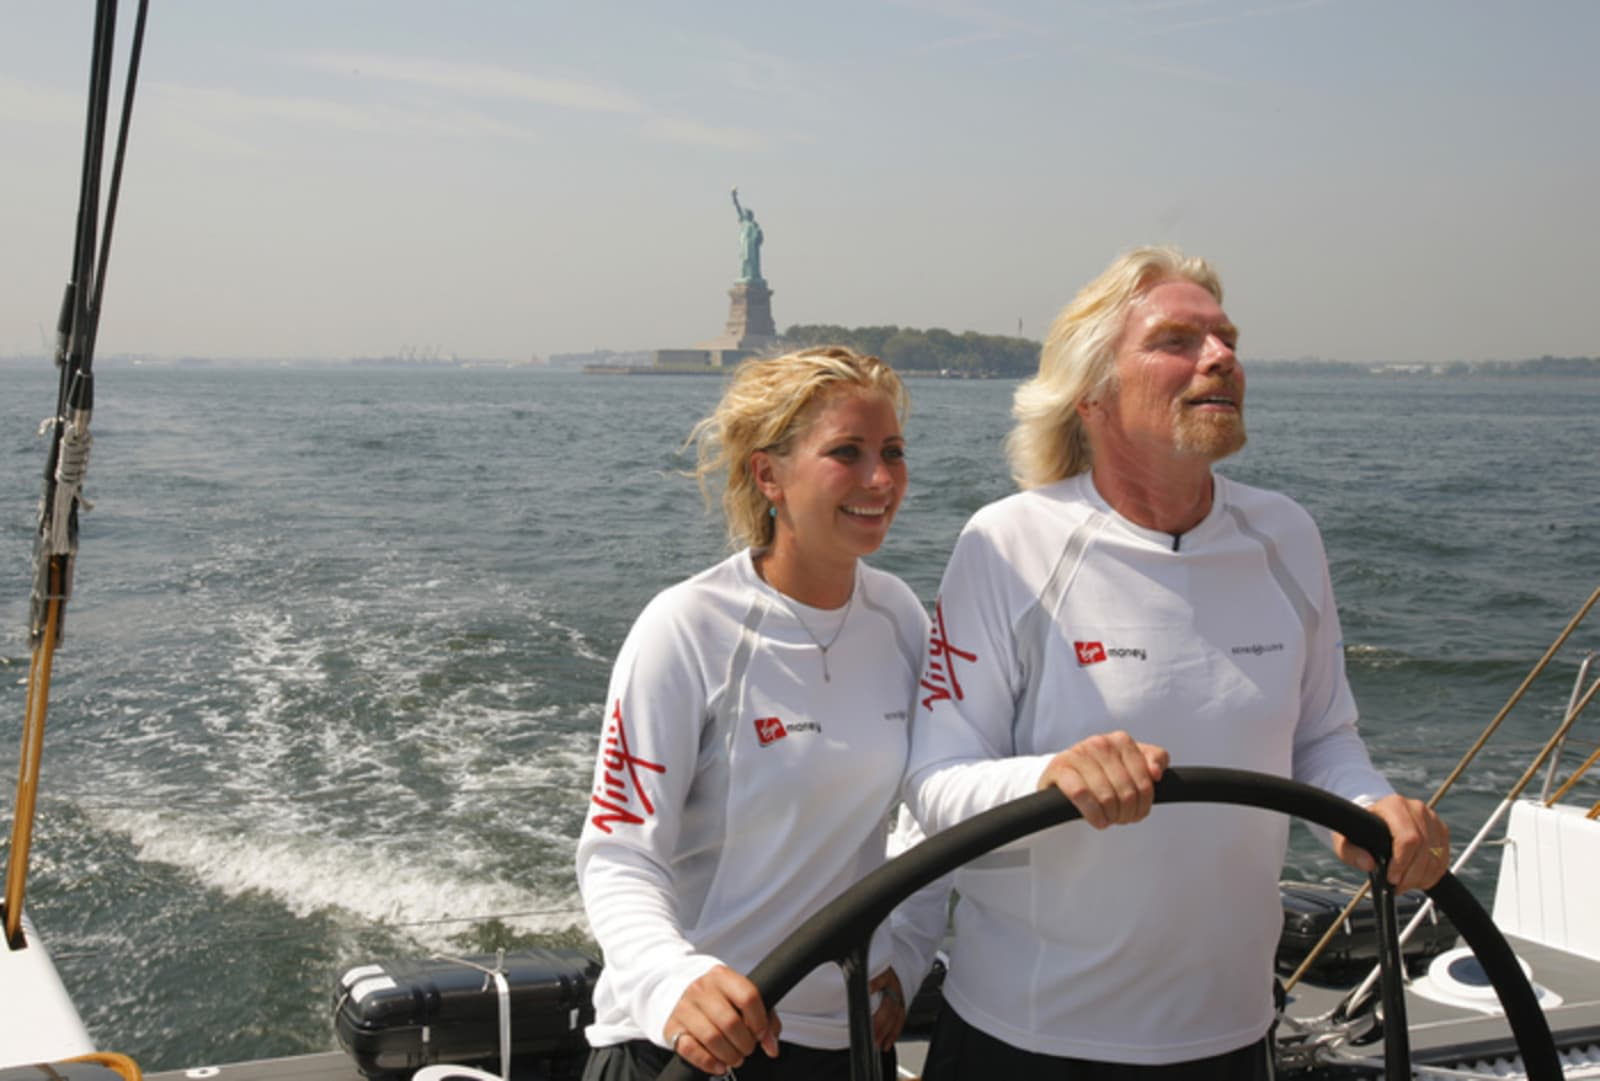 Richard Branson and Holly Branson in New York City for the Virgin Money Sail Challenge